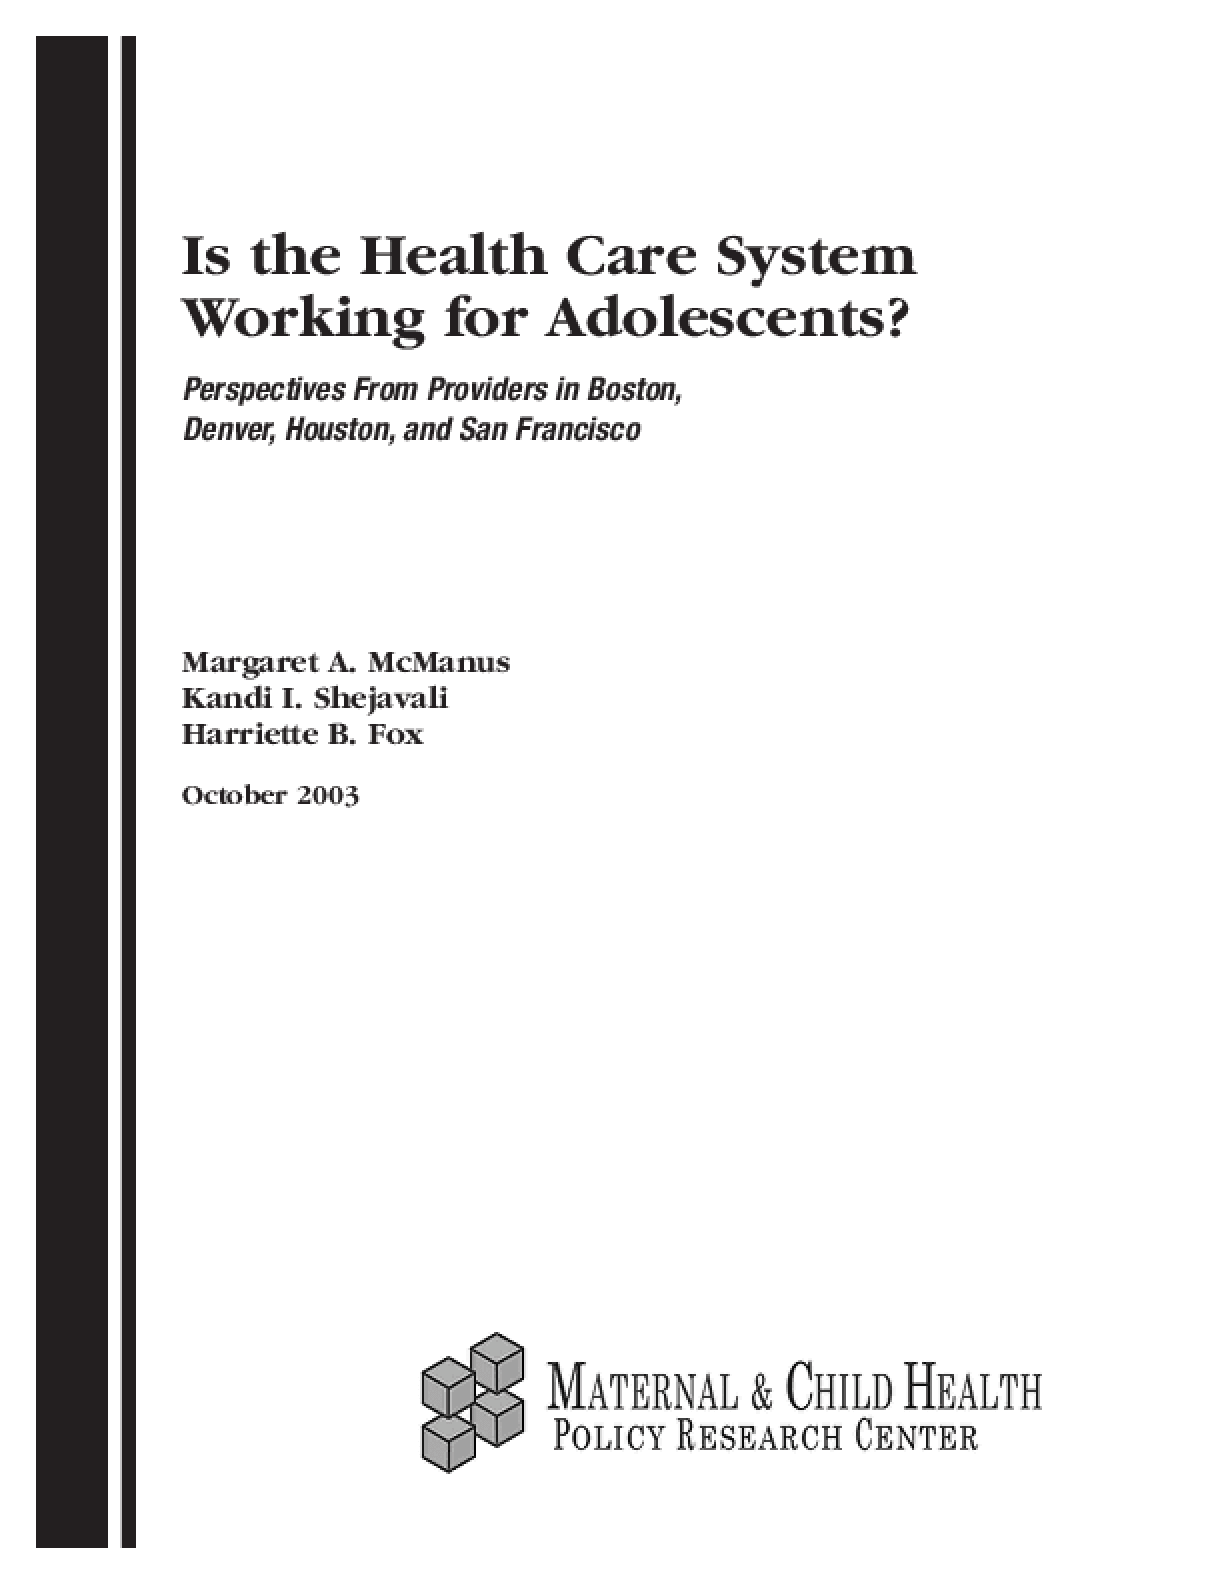 Is the Health Care System Working for Adolescents? Perspectives From Providers in Boston, Denver, Houston, and San Francisco